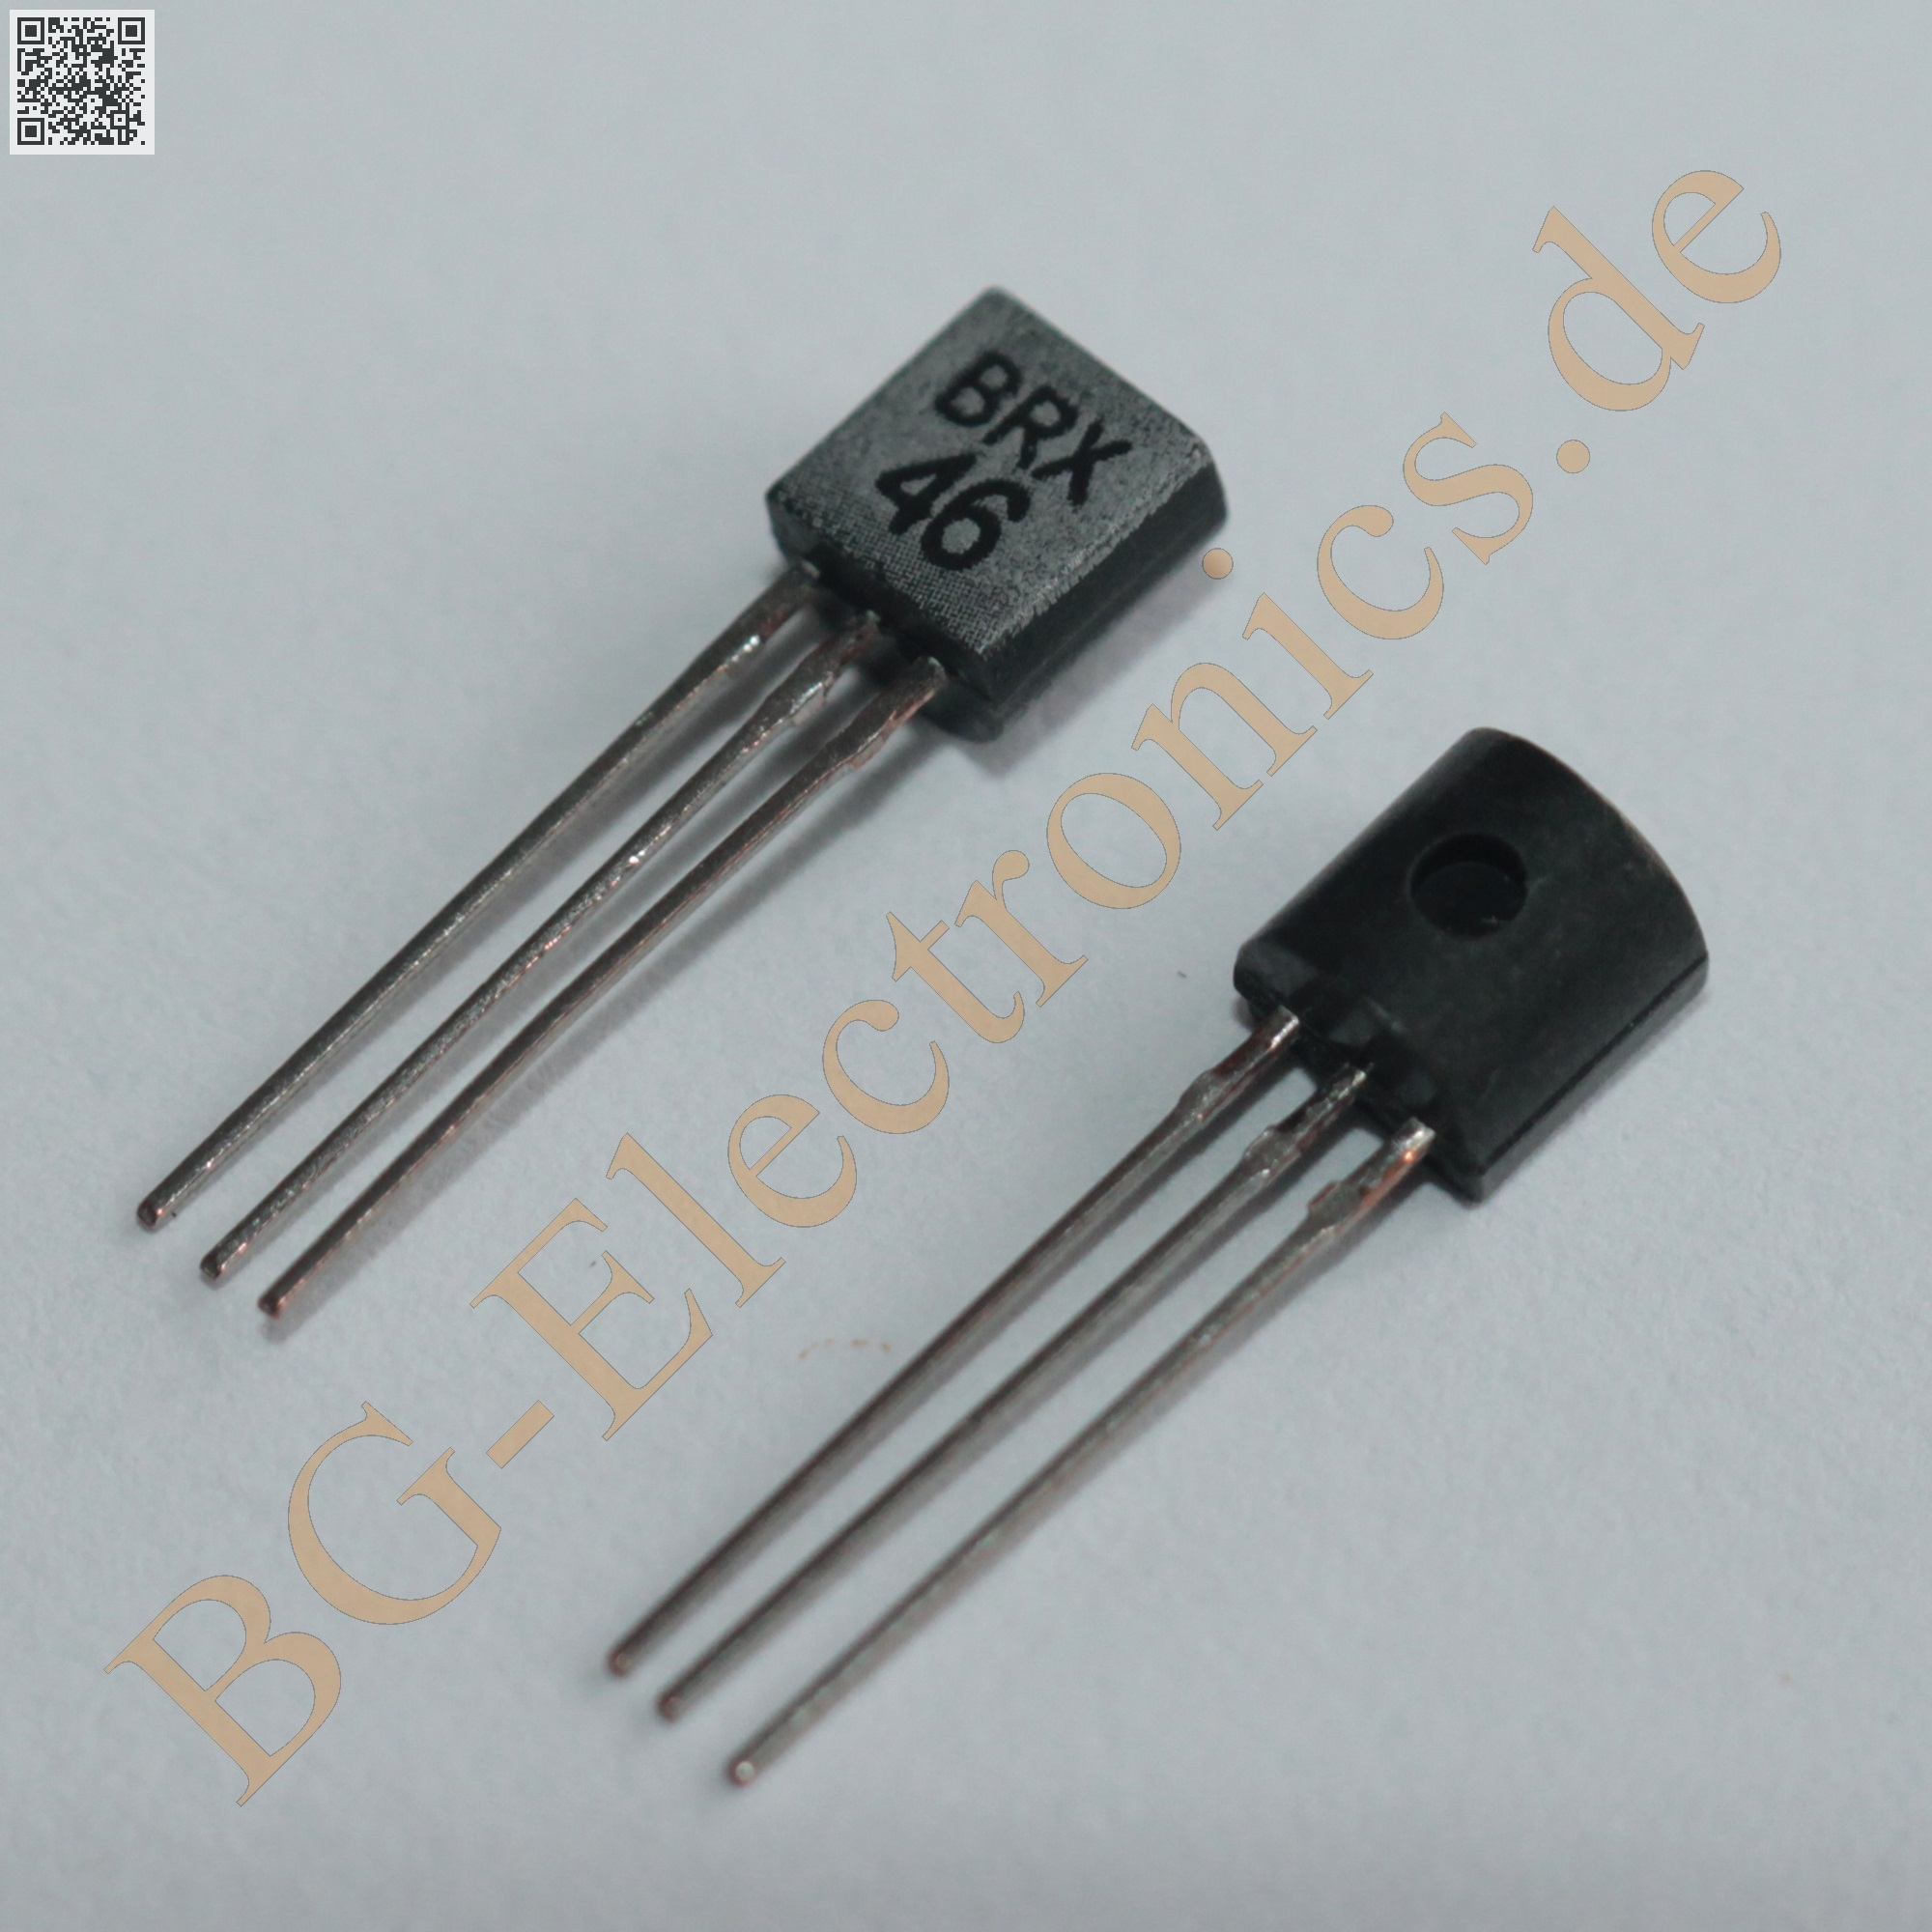 5 x brx46 silicon controlled rectifiers to 92 5pcs ebay. Black Bedroom Furniture Sets. Home Design Ideas